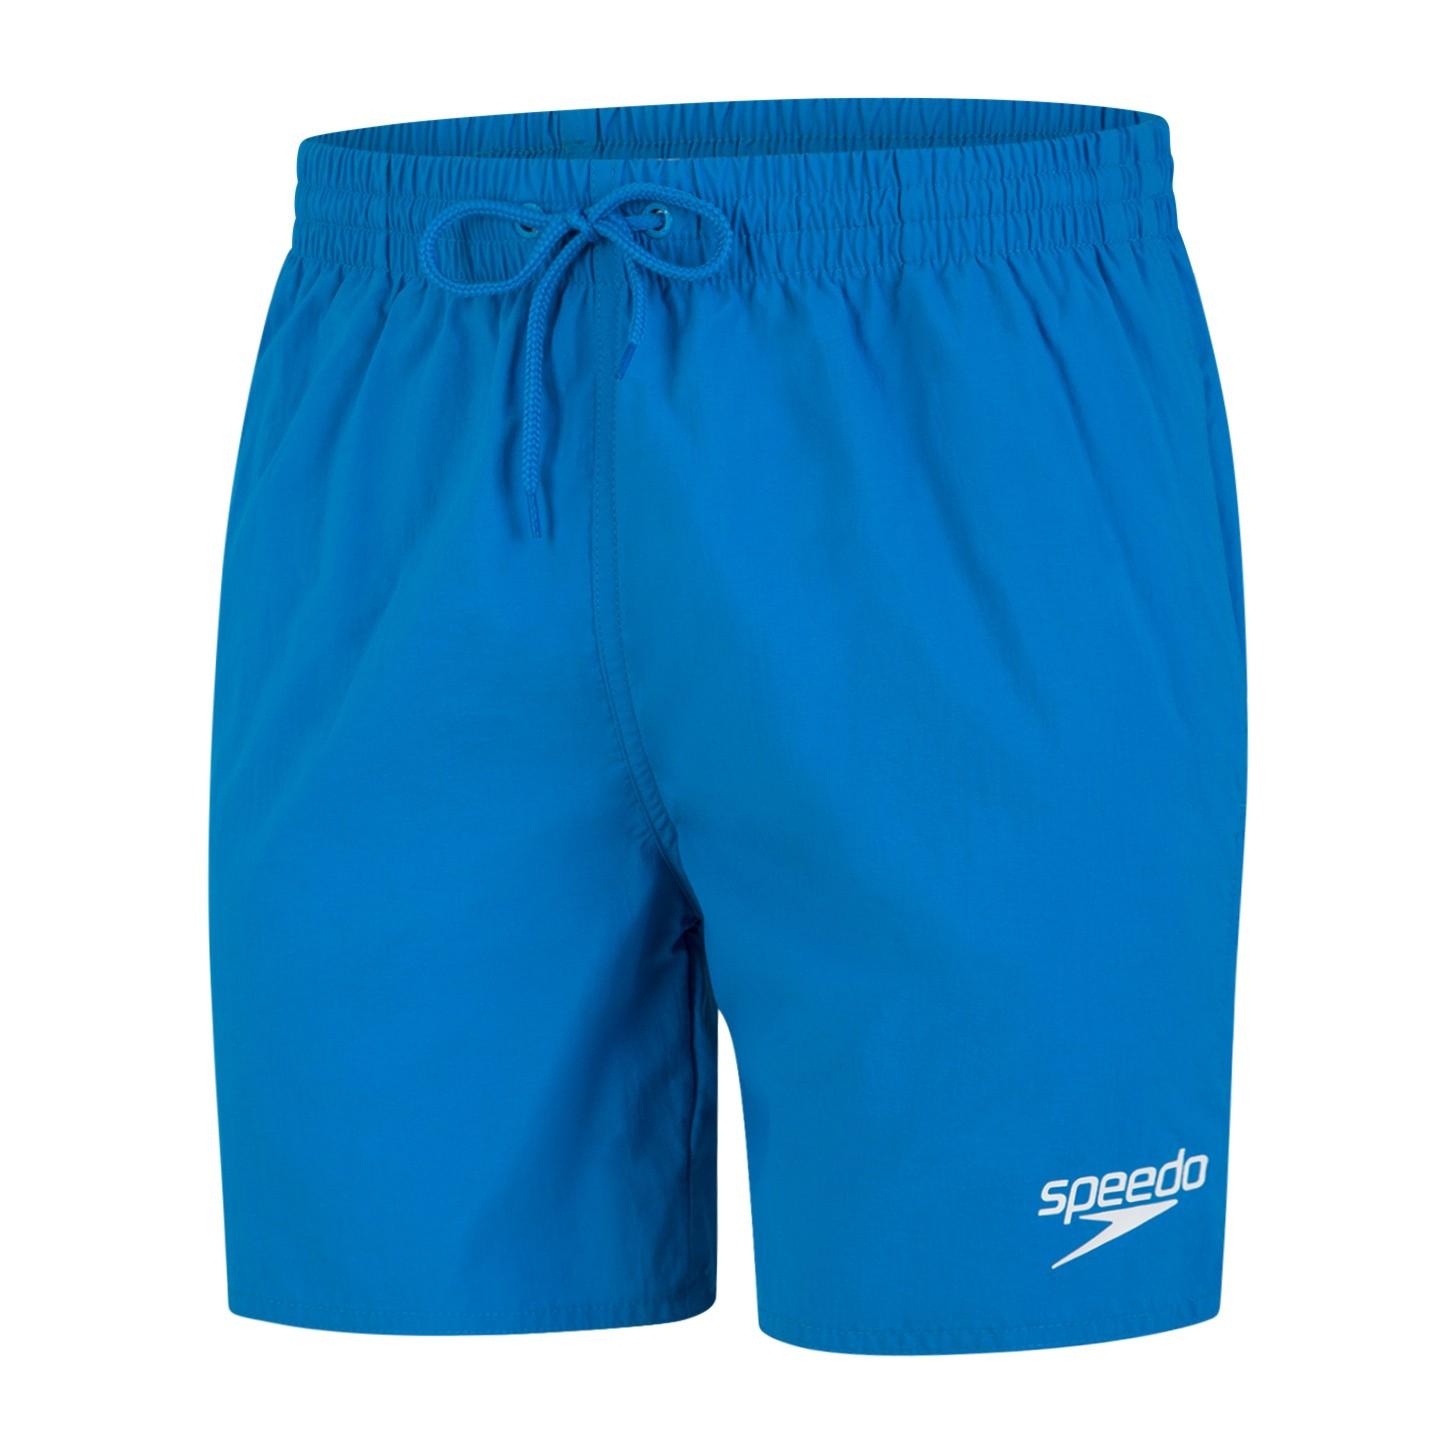 Speedo Essentials mens Short Blue